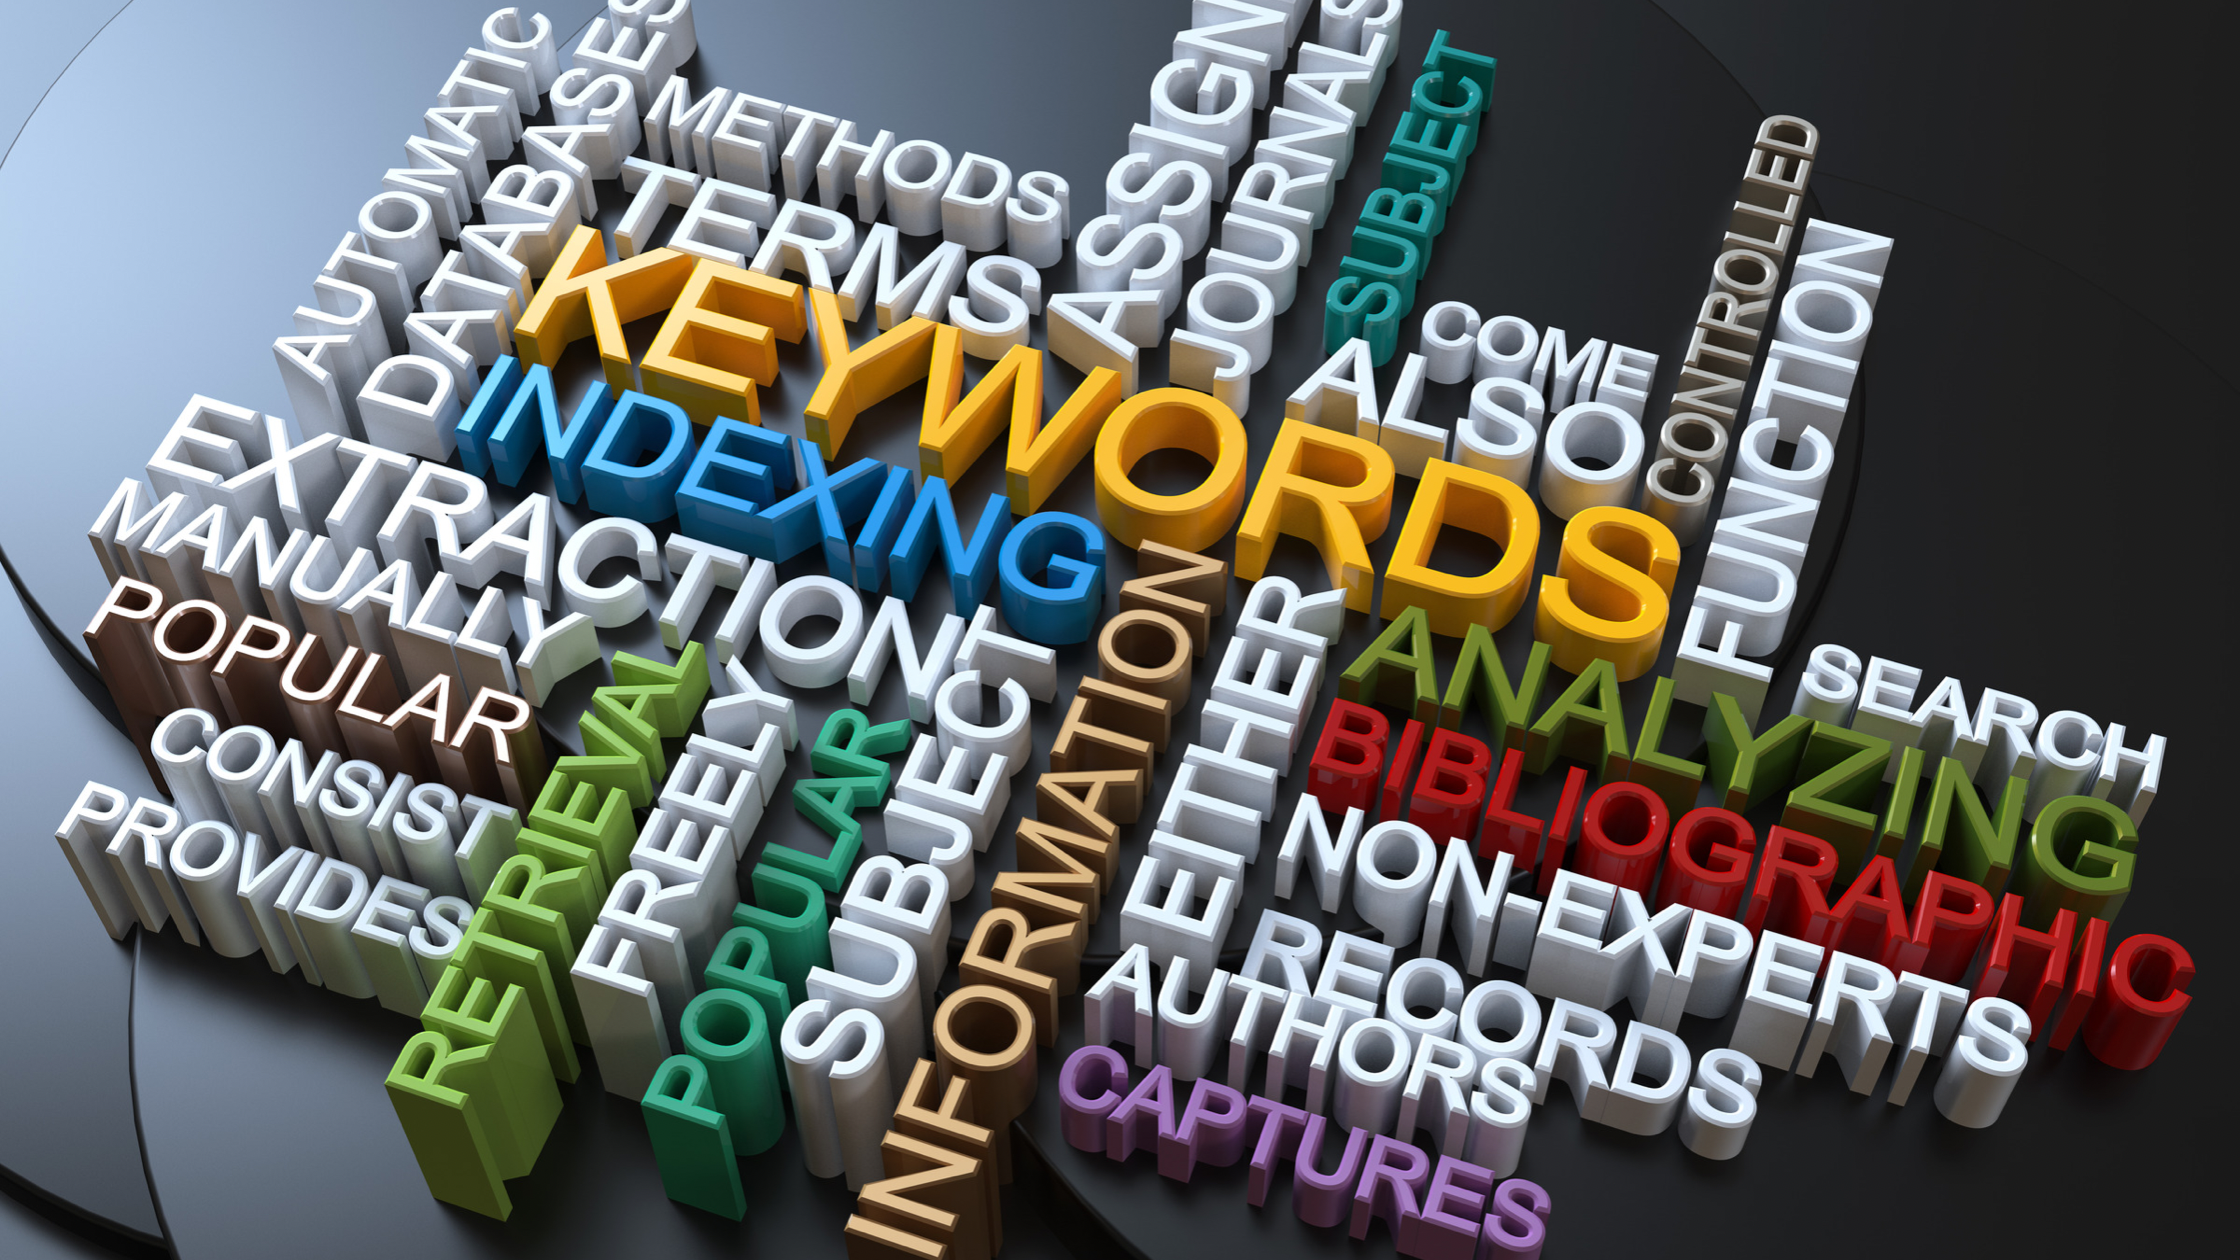 Low competition keywords for SEO